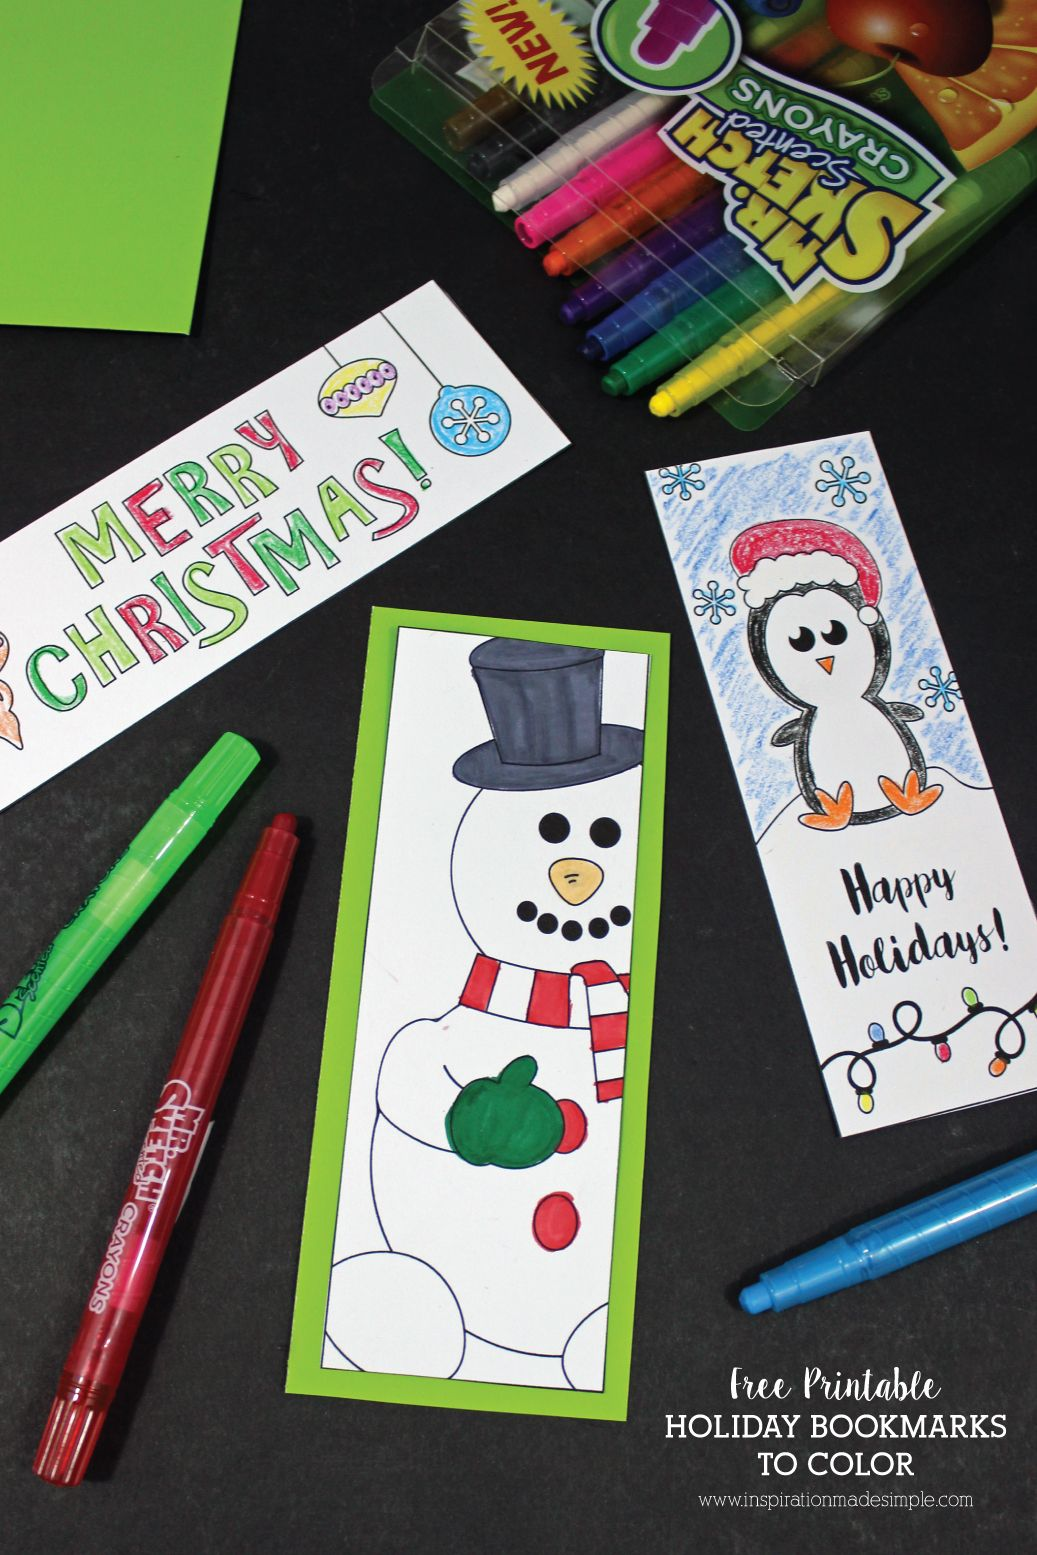 Printable Holiday Bookmarks to Color | Kid Blogger Network ...